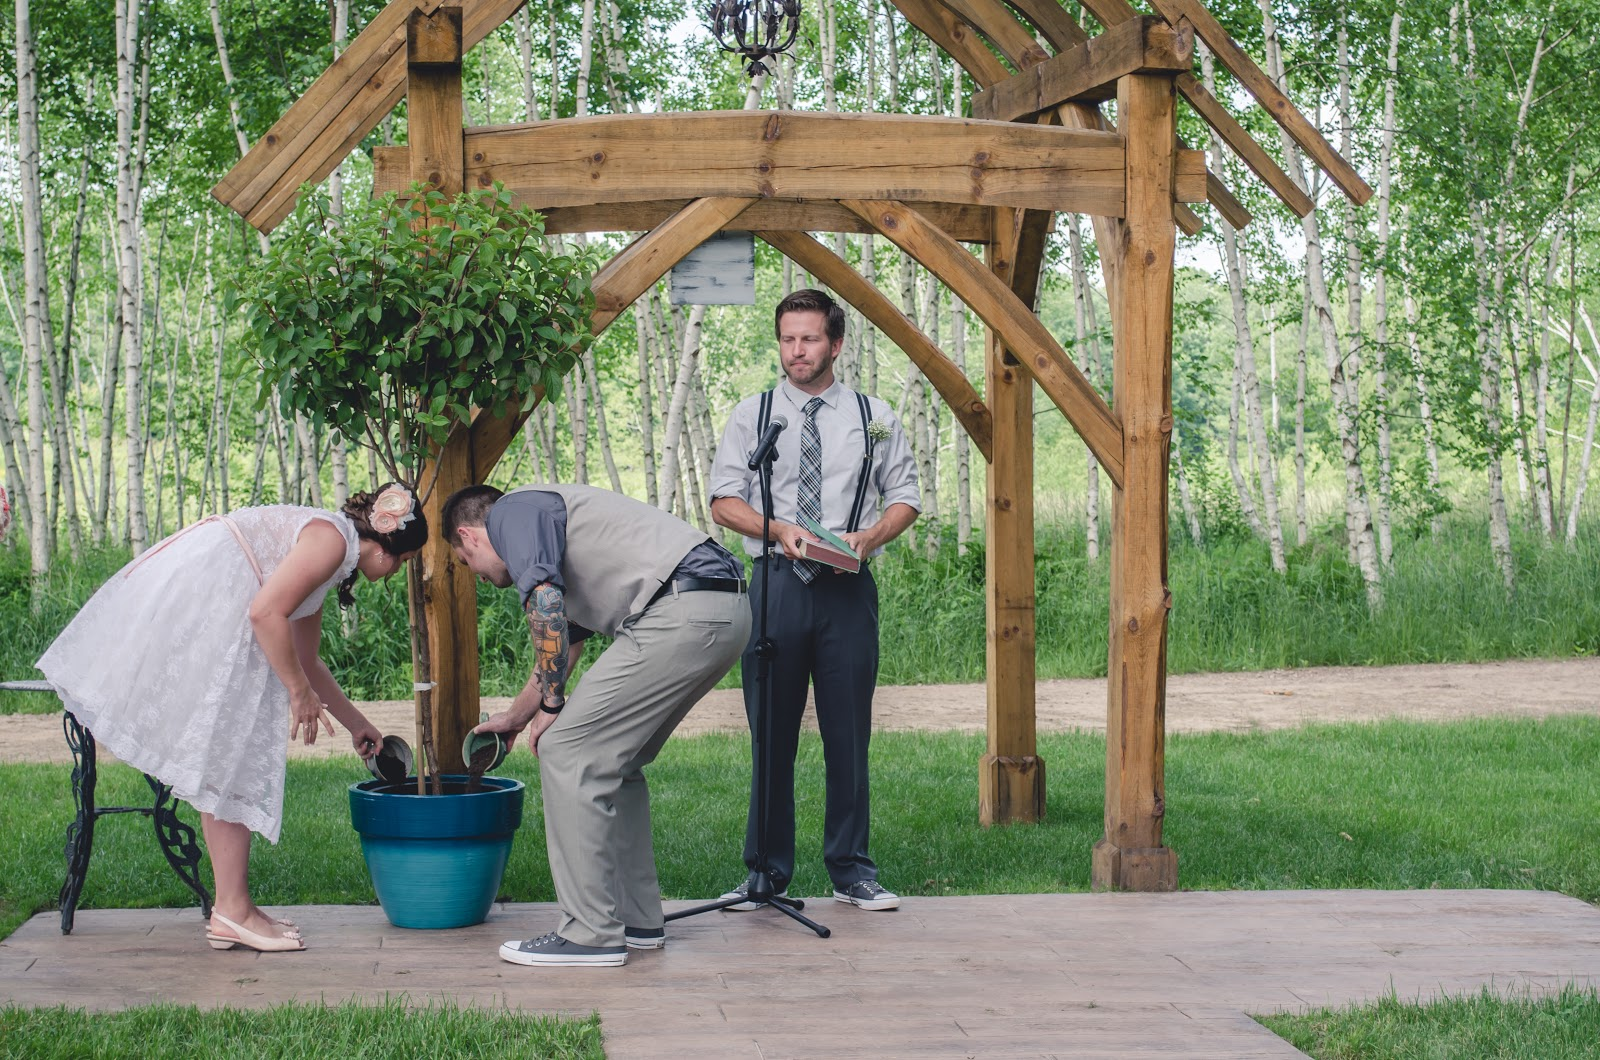 How to decide on a unity ceremony that fits your wedding day